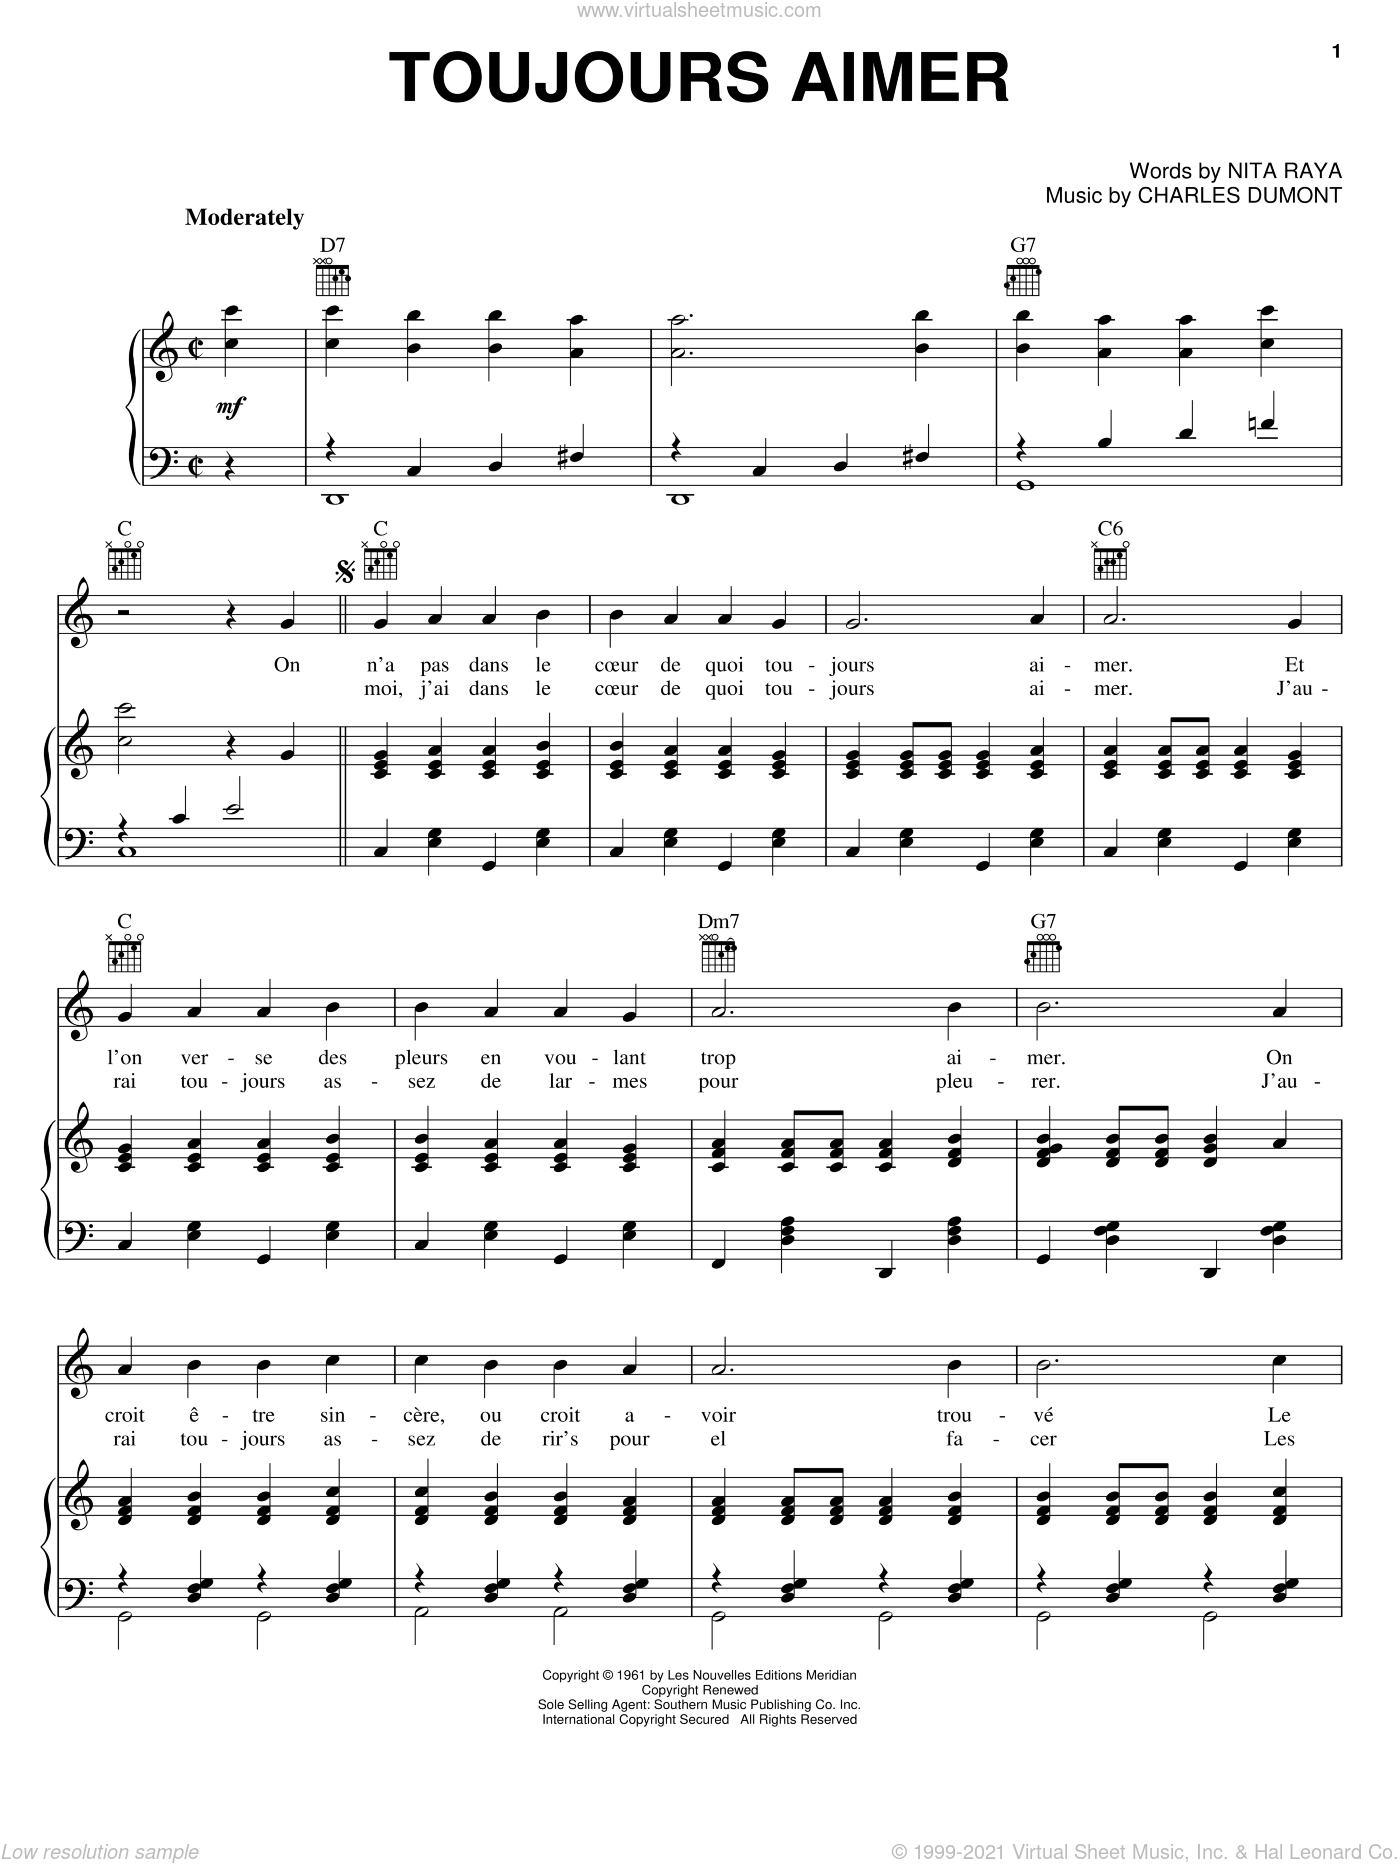 Toujours Aimer sheet music for voice, piano or guitar by Nita Raya, Edith Piaf and Charles Dumont. Score Image Preview.